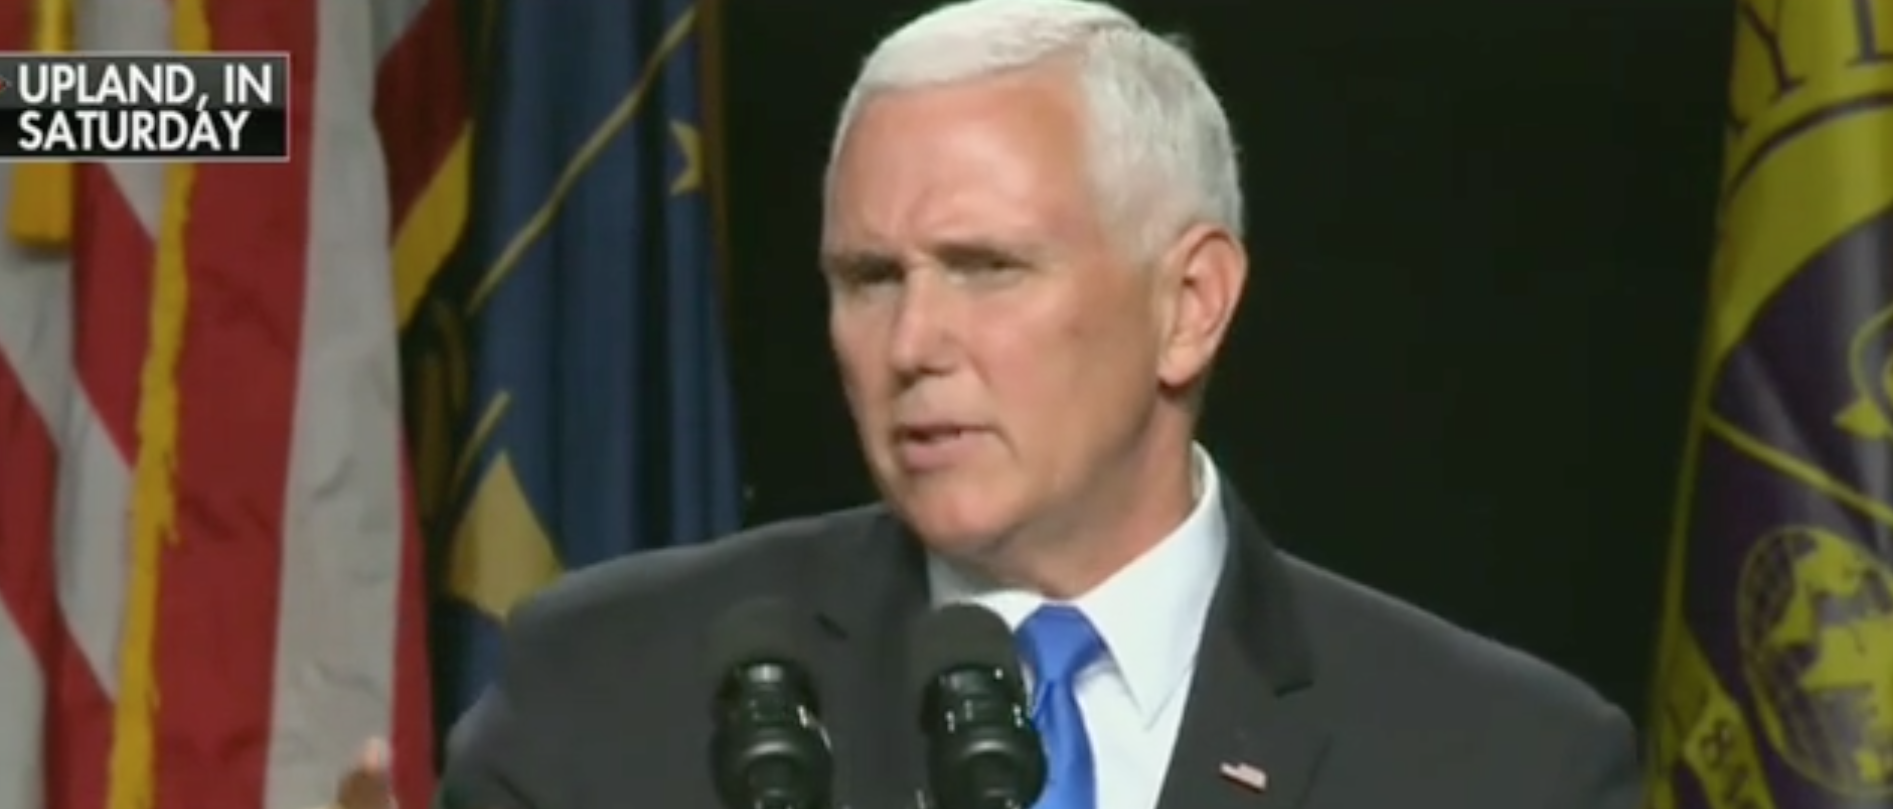 Mike Pence Gets Standing Ovation Despite Student Walkout At Commencement Speech